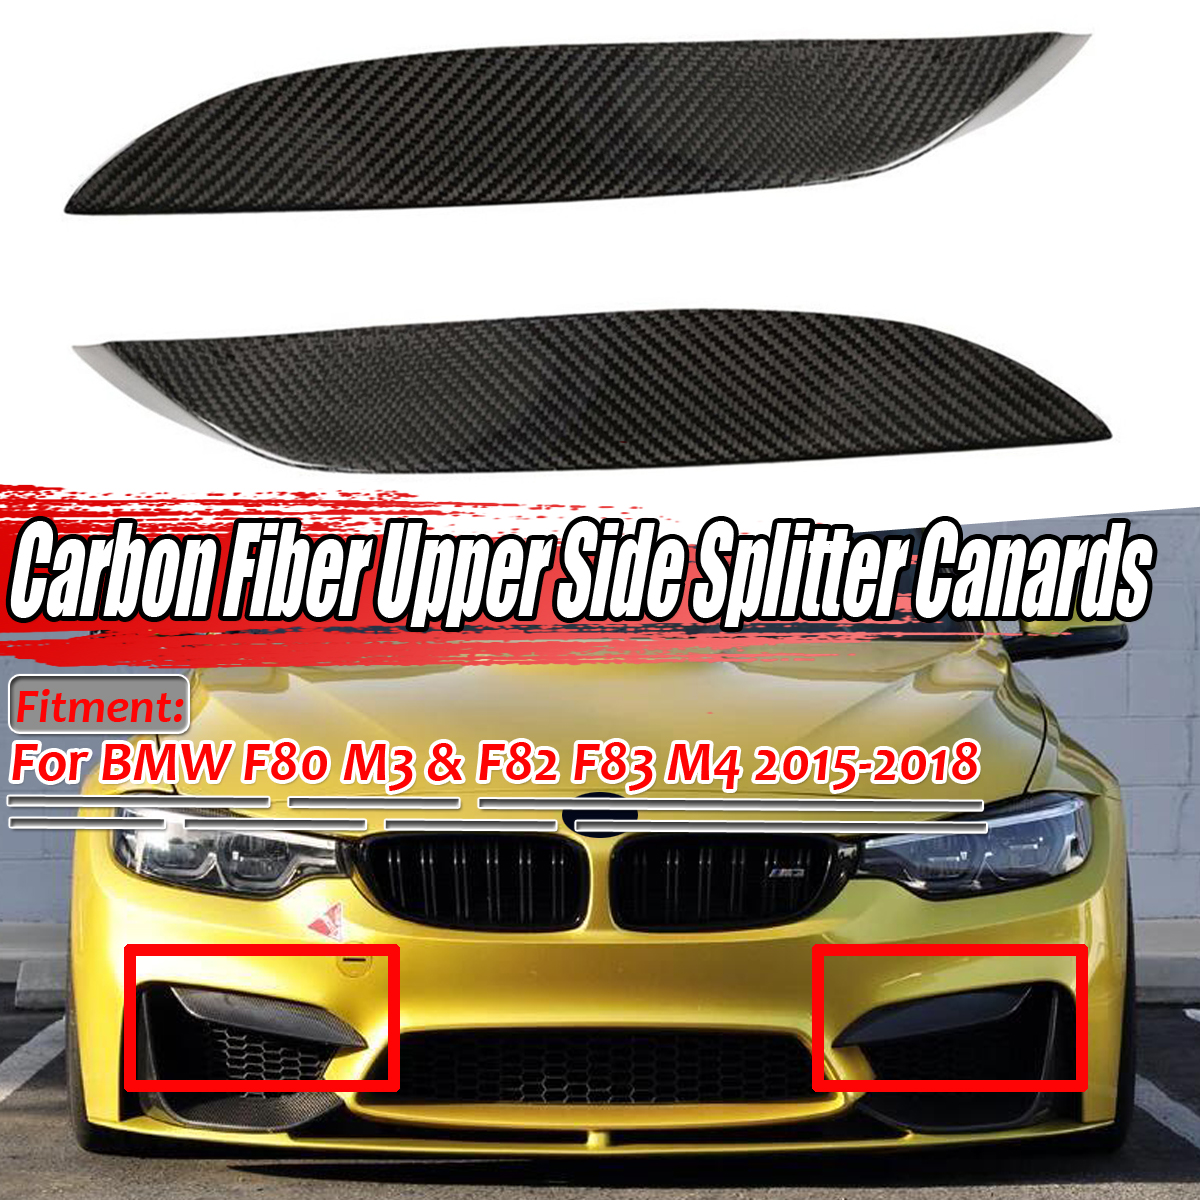 100% Real Carbon Fiber Car Front Bumper Lip Diffuser Upper Side Splitter Canards Lip Trim For BMW F80 M3 F82 F83 M4 2015-2018 image